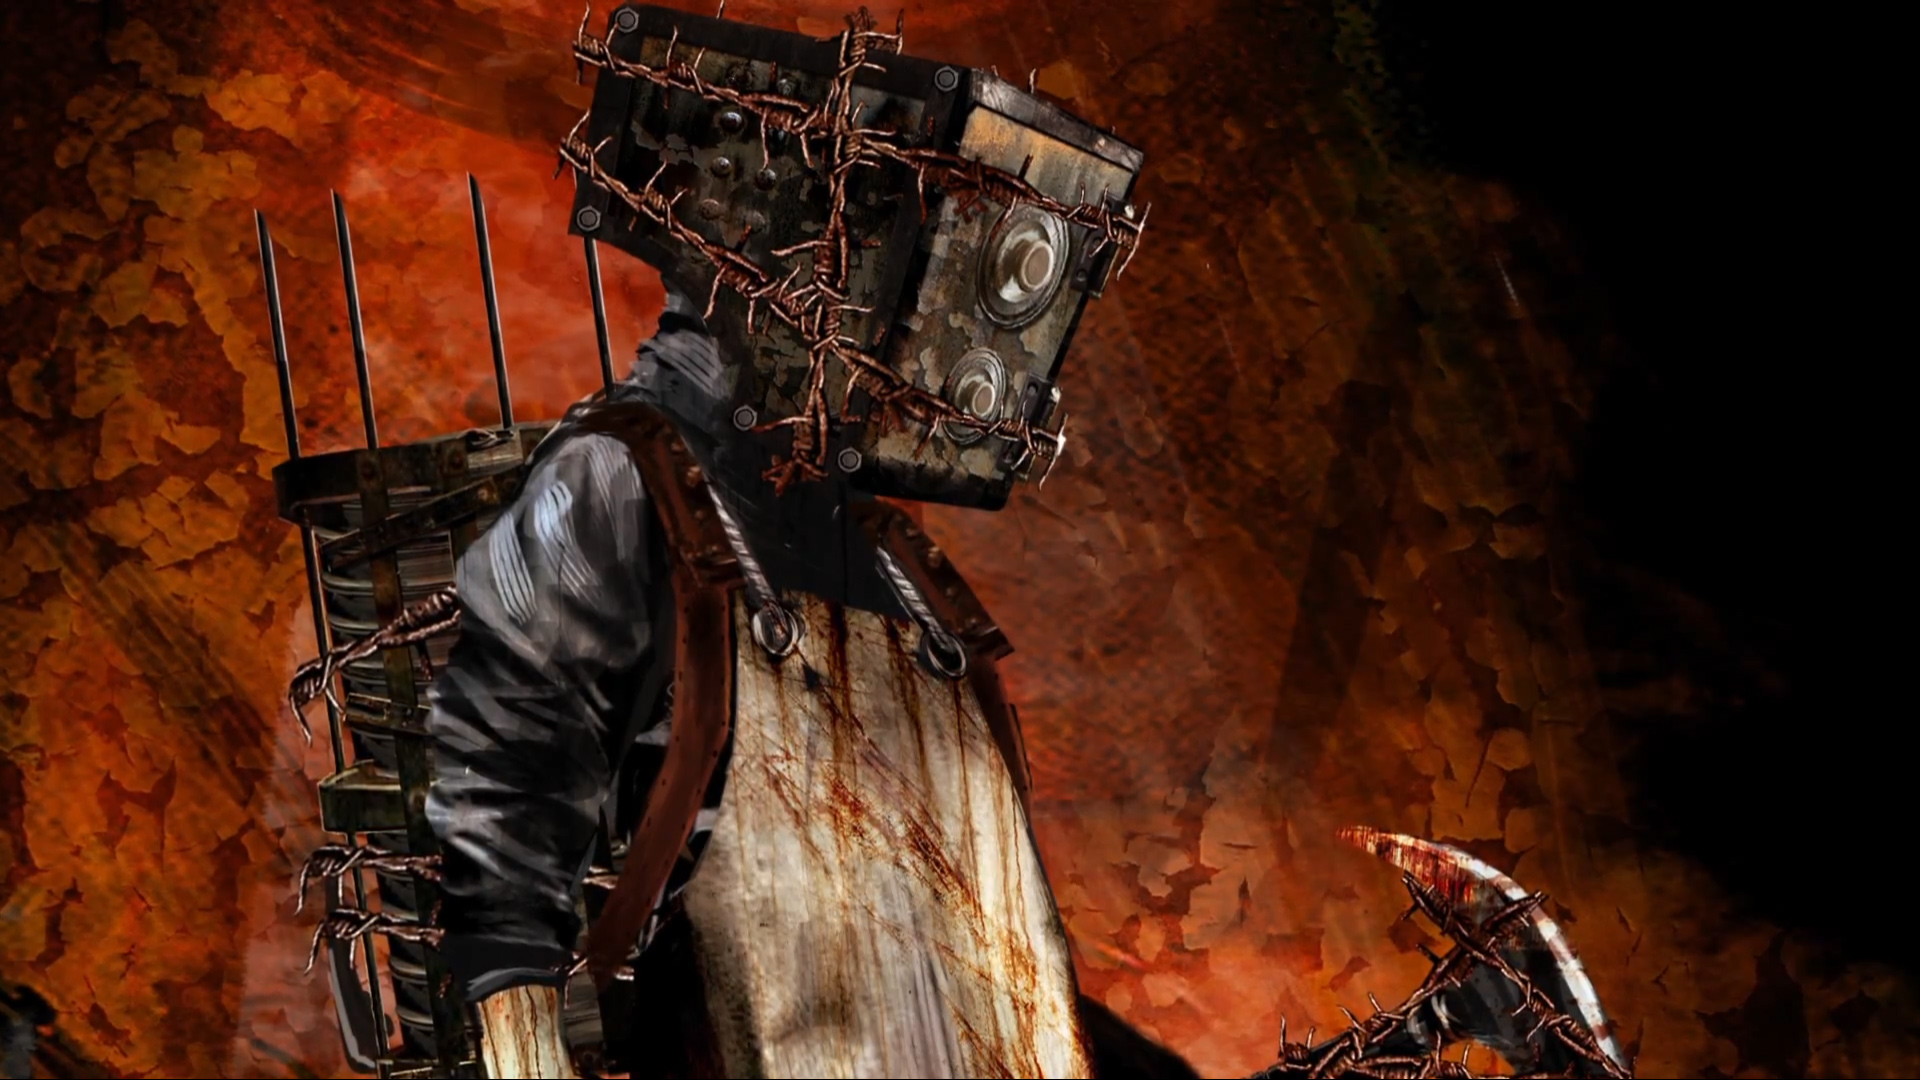 Image art-the evil within keeper-04. Jpg | the evil within wiki.